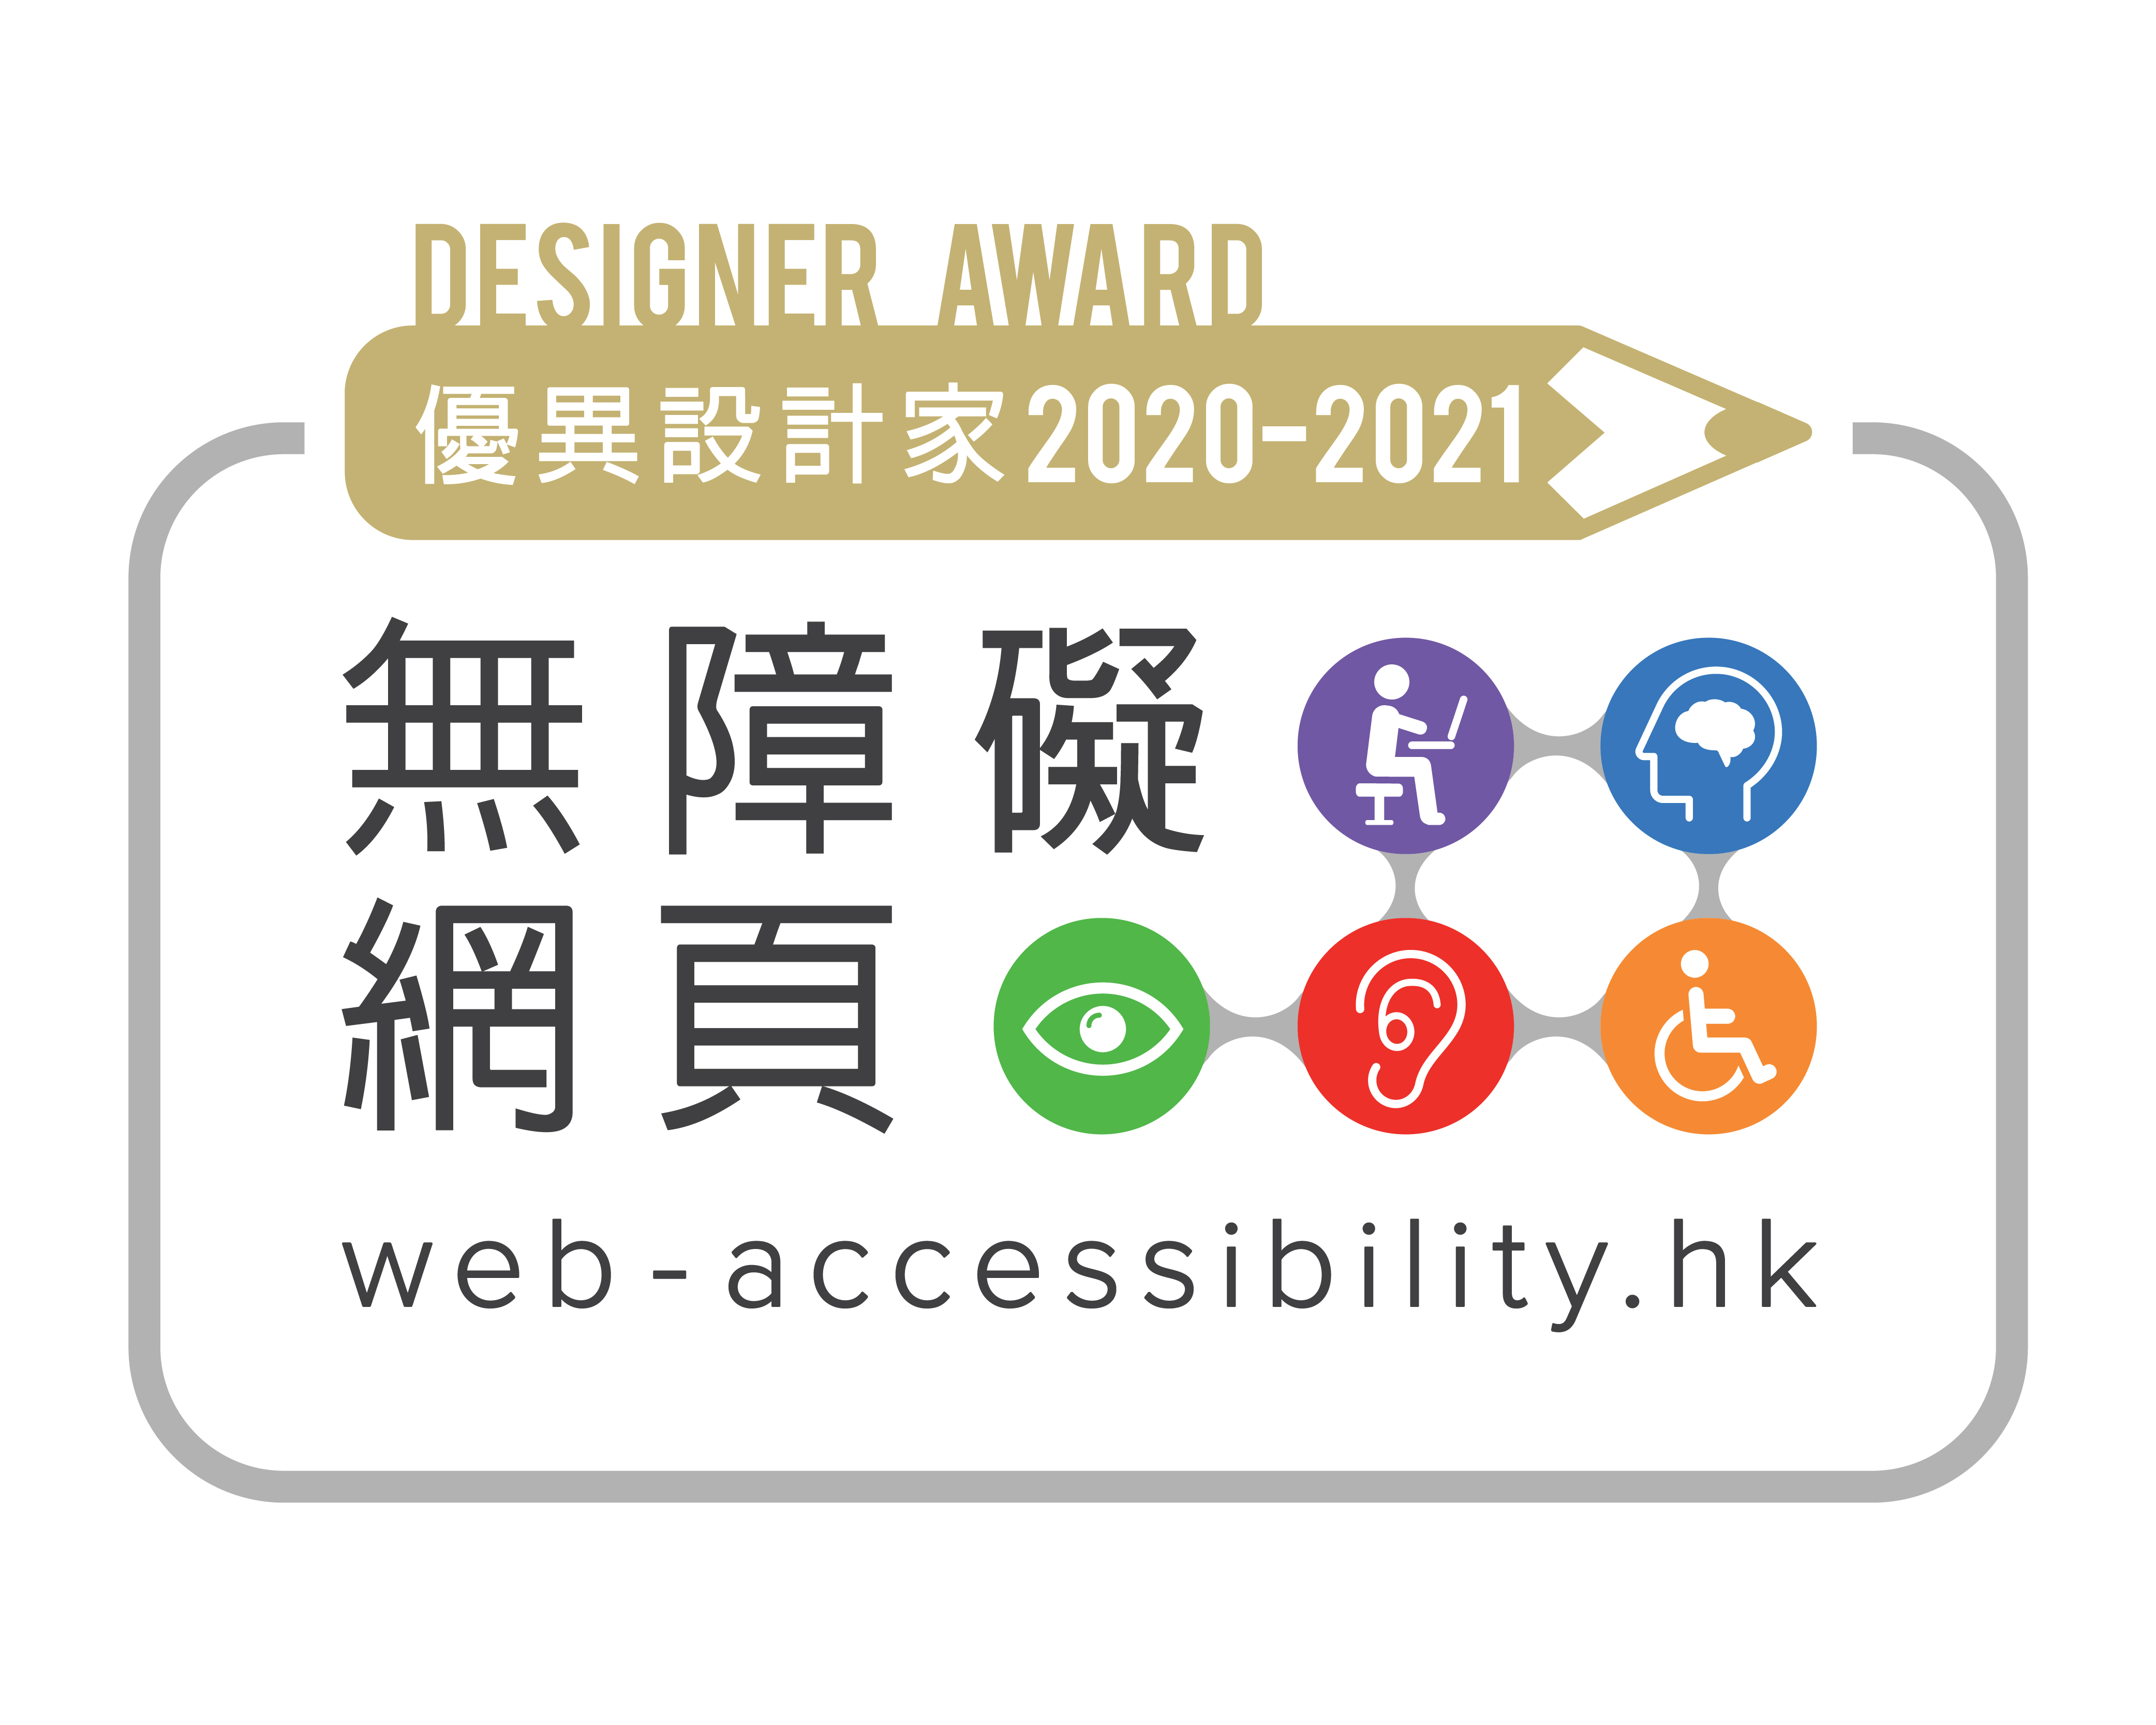 WARS Designer Award